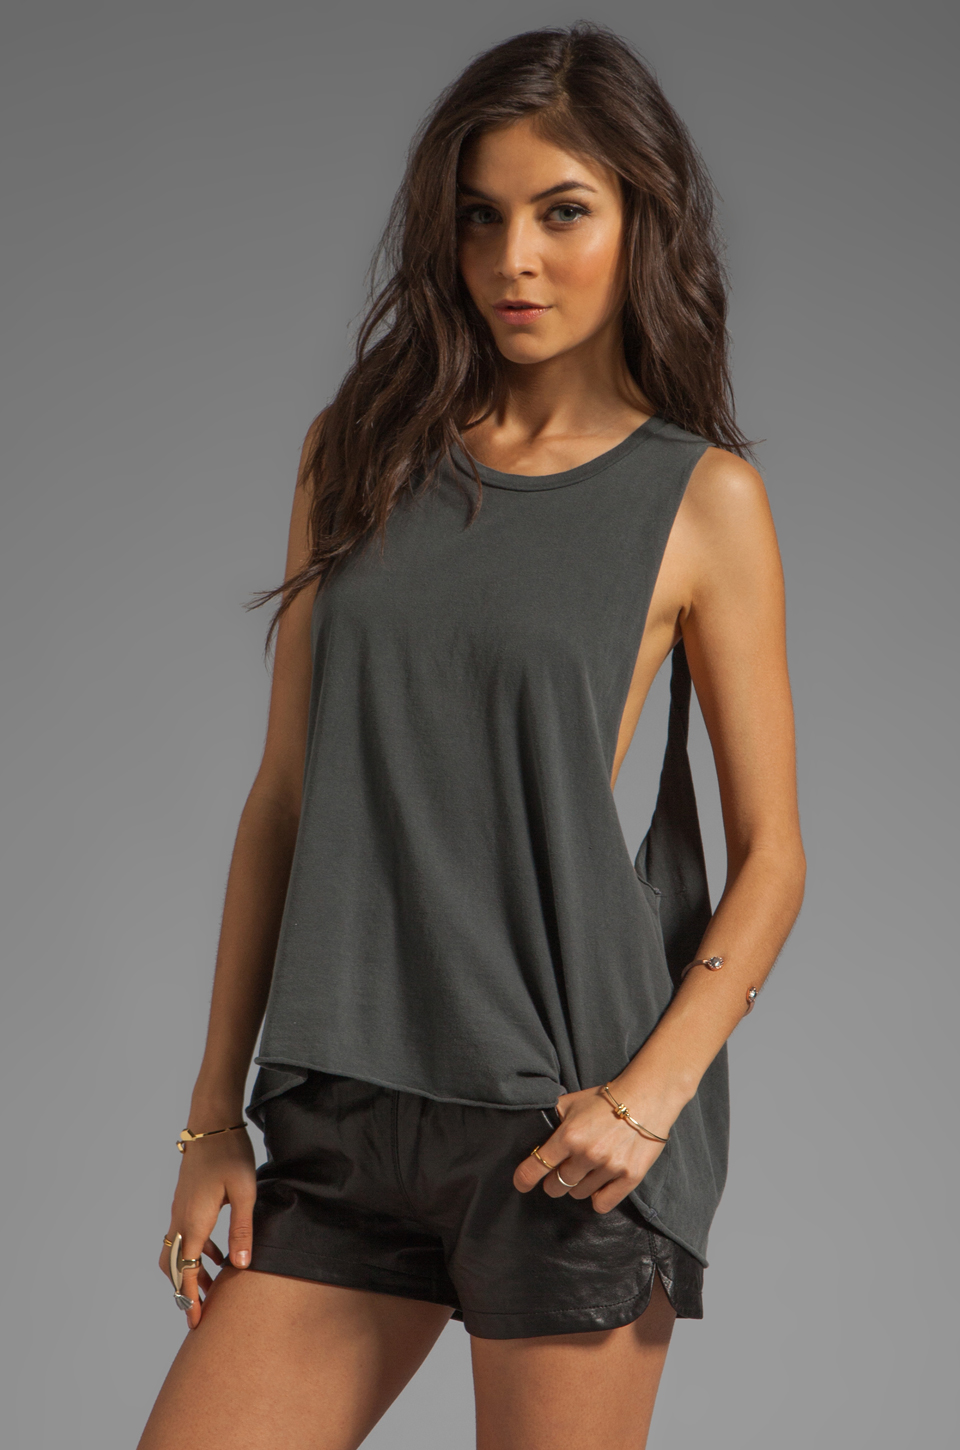 Obey Rider Tank in Graphite